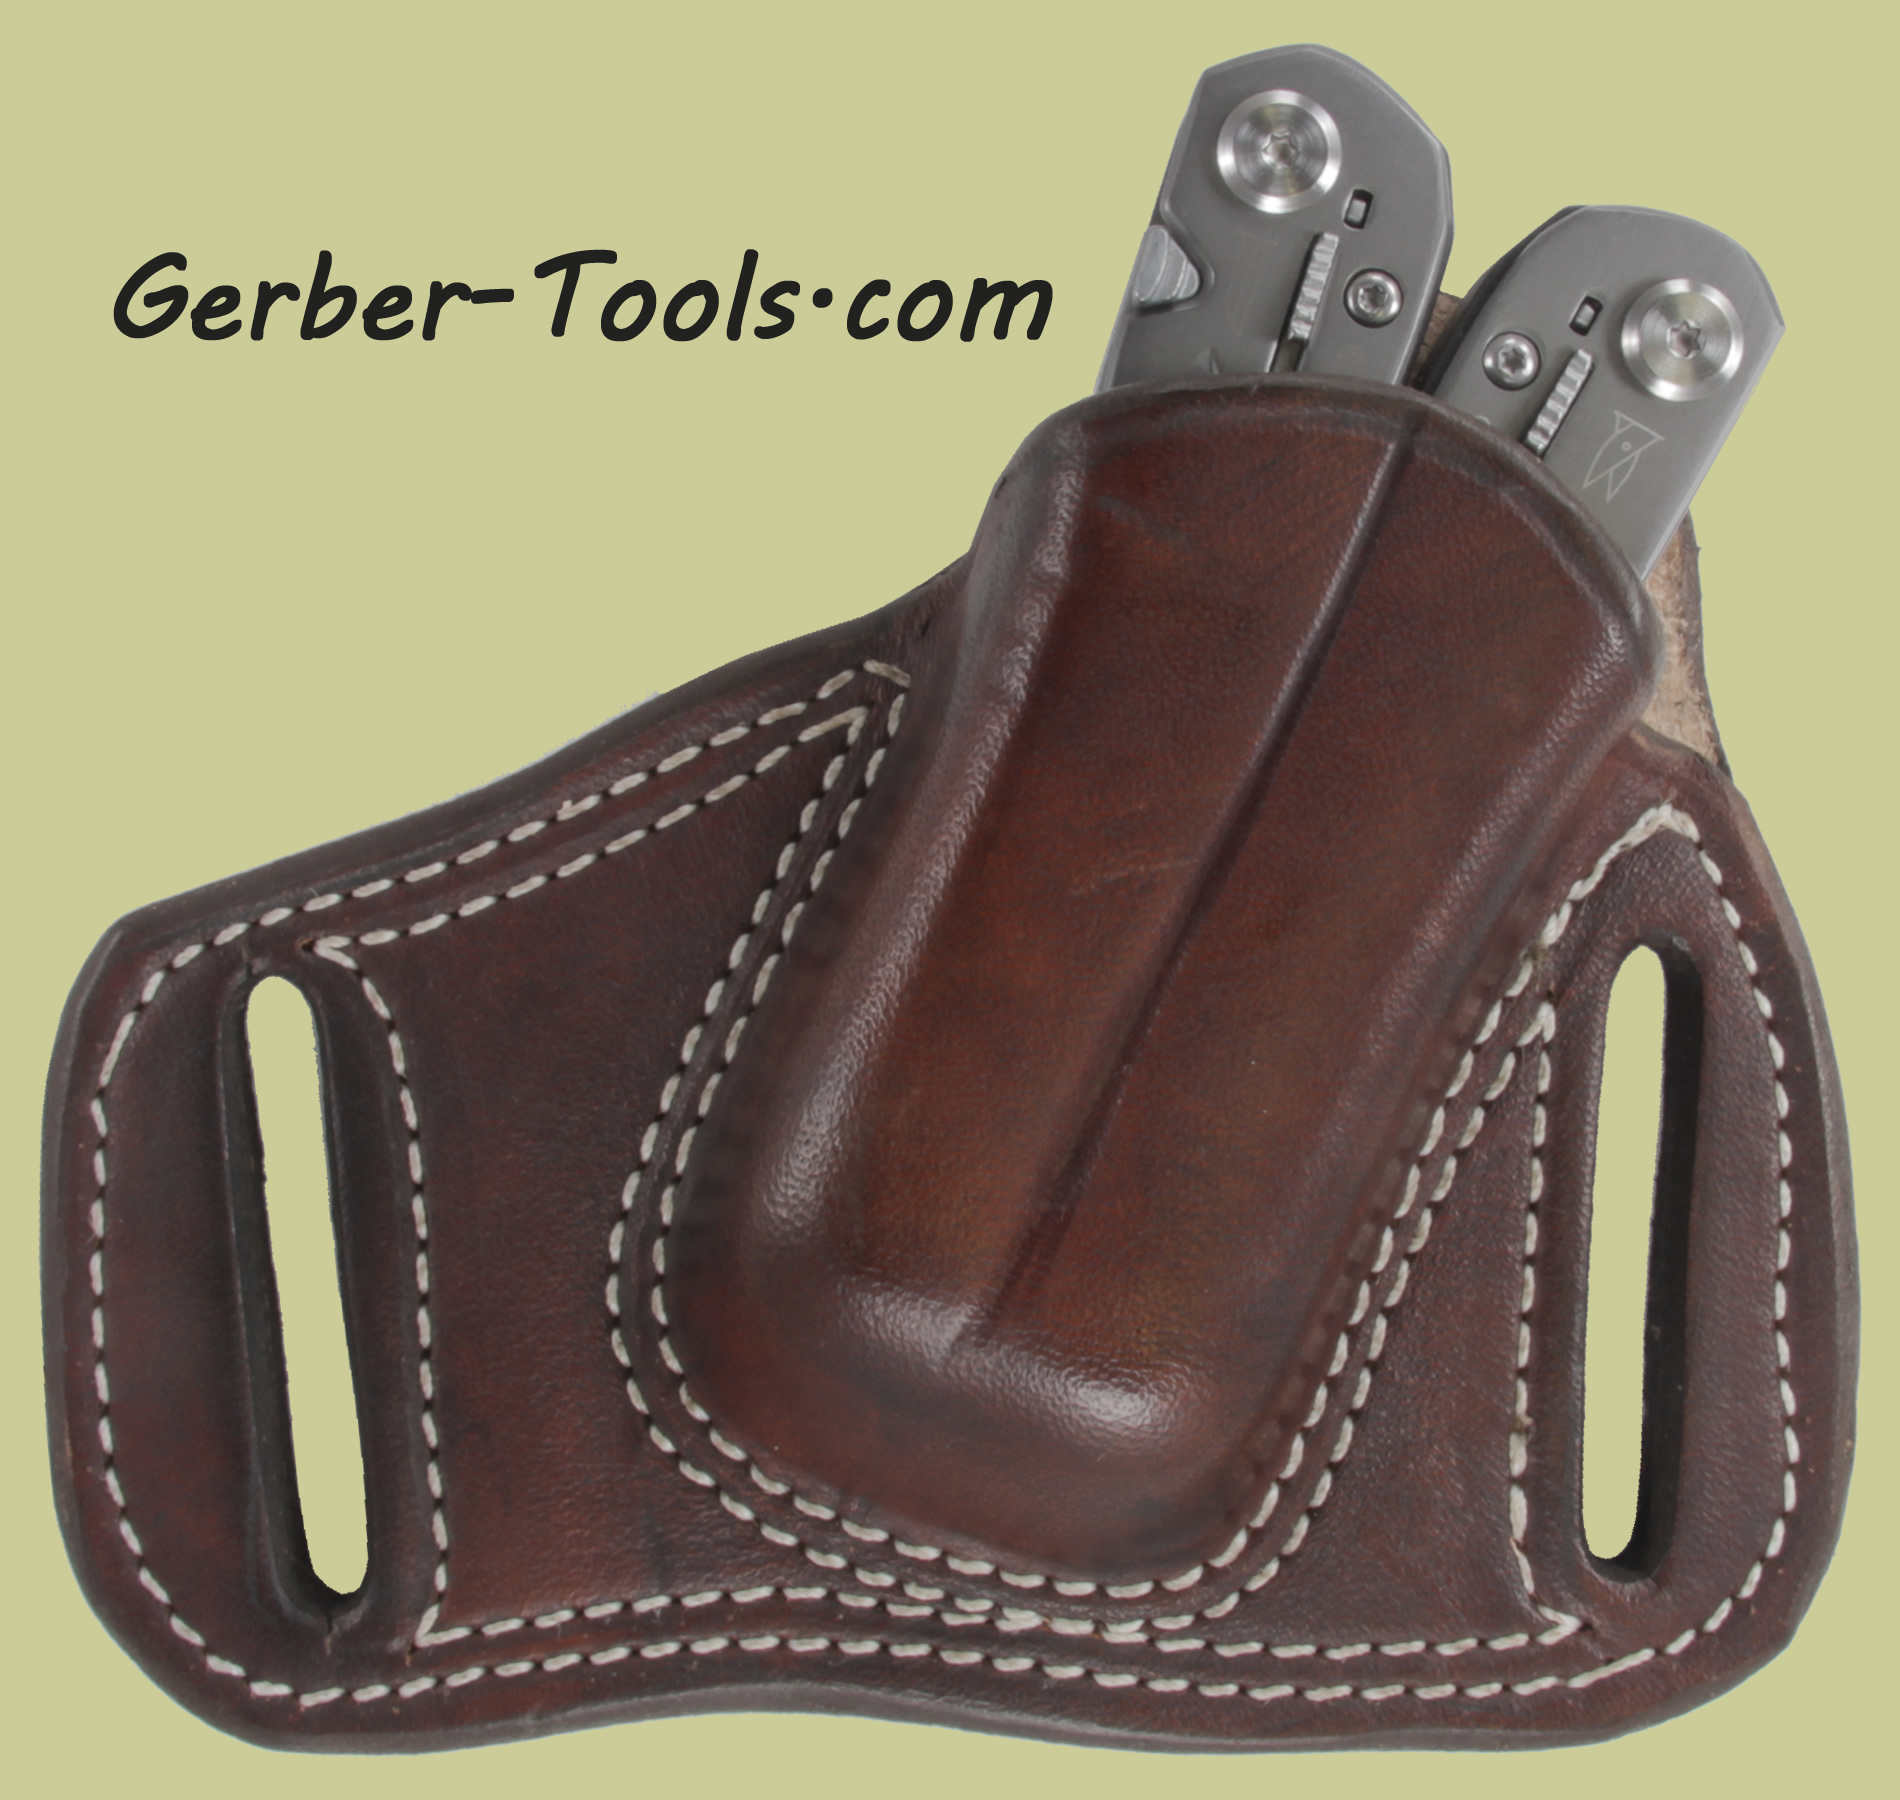 Brown Leather Sheath Pancake Holster for Gerber Suspension